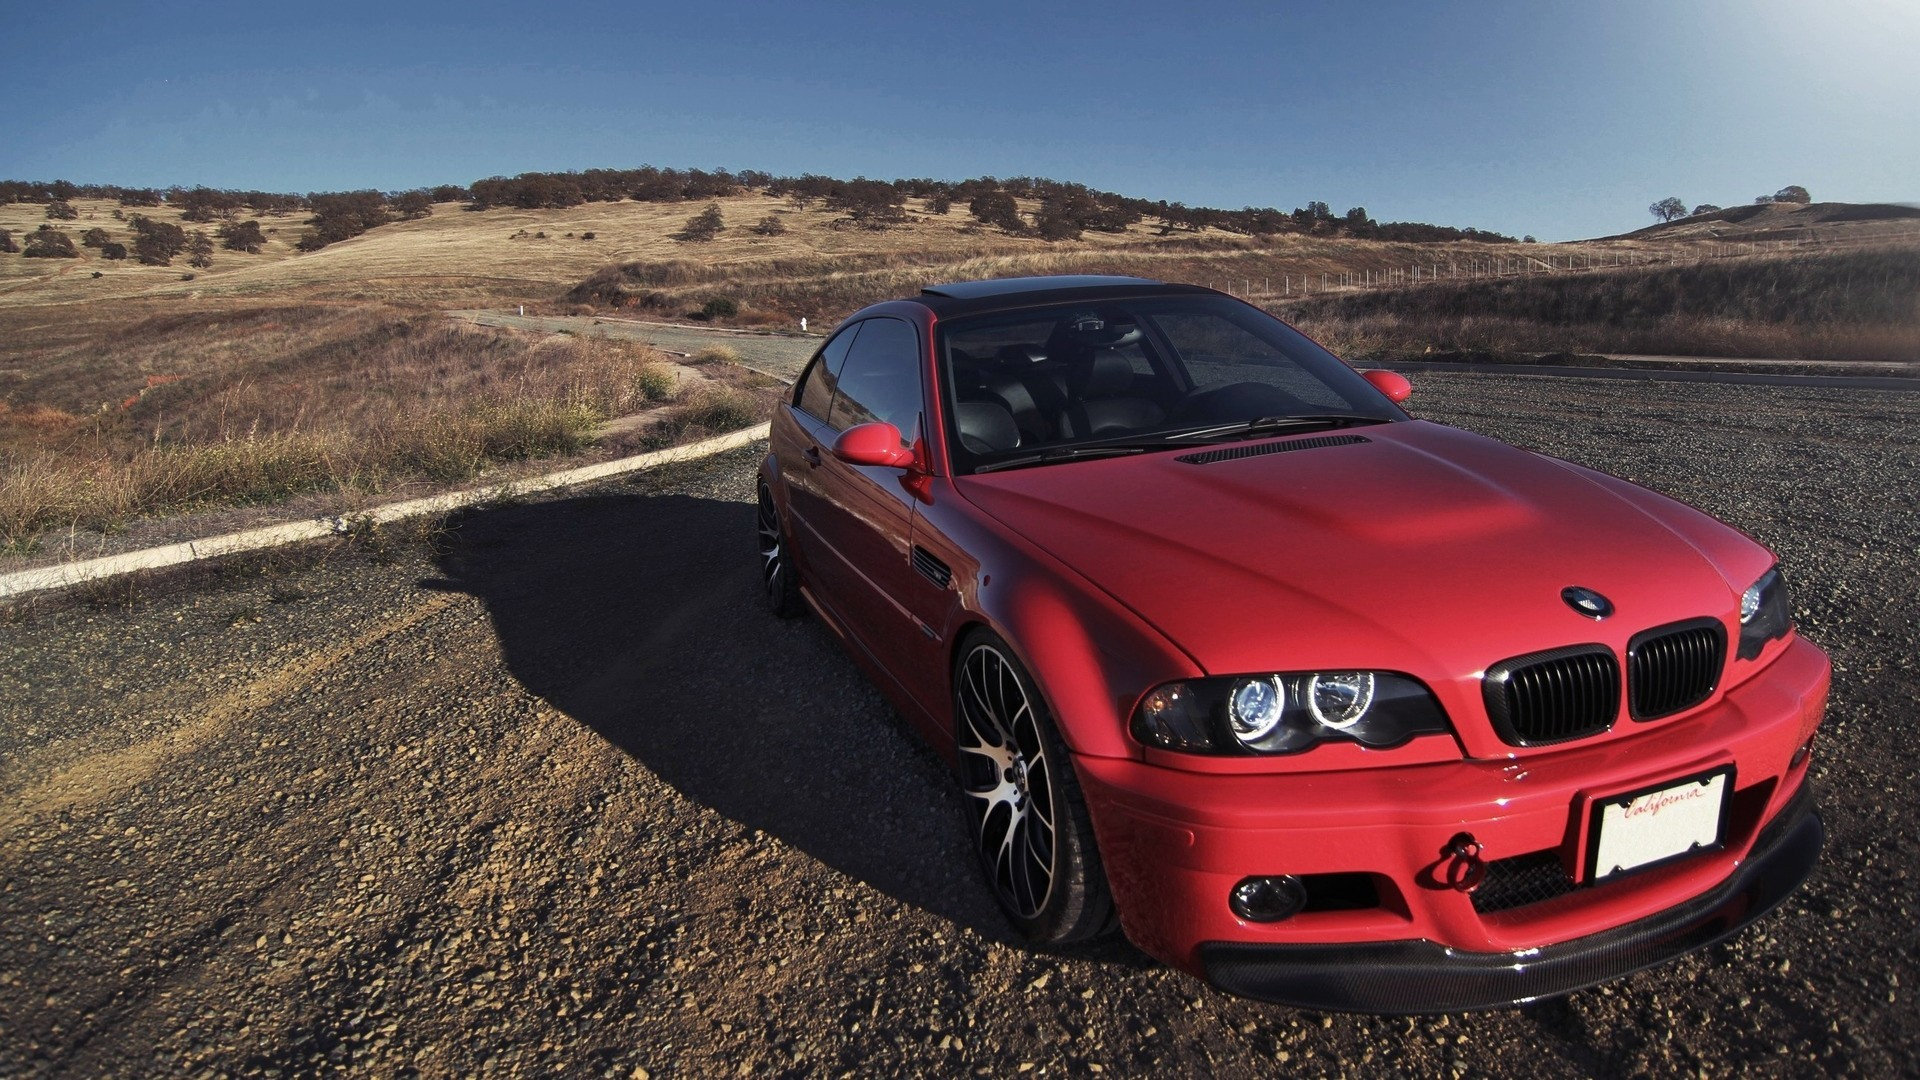 Bmw cars outdoors vehicles m3 e46 wallpaper allwallpaper 14861 bmw cars outdoors vehicles m3 e46 wallpaper voltagebd Images